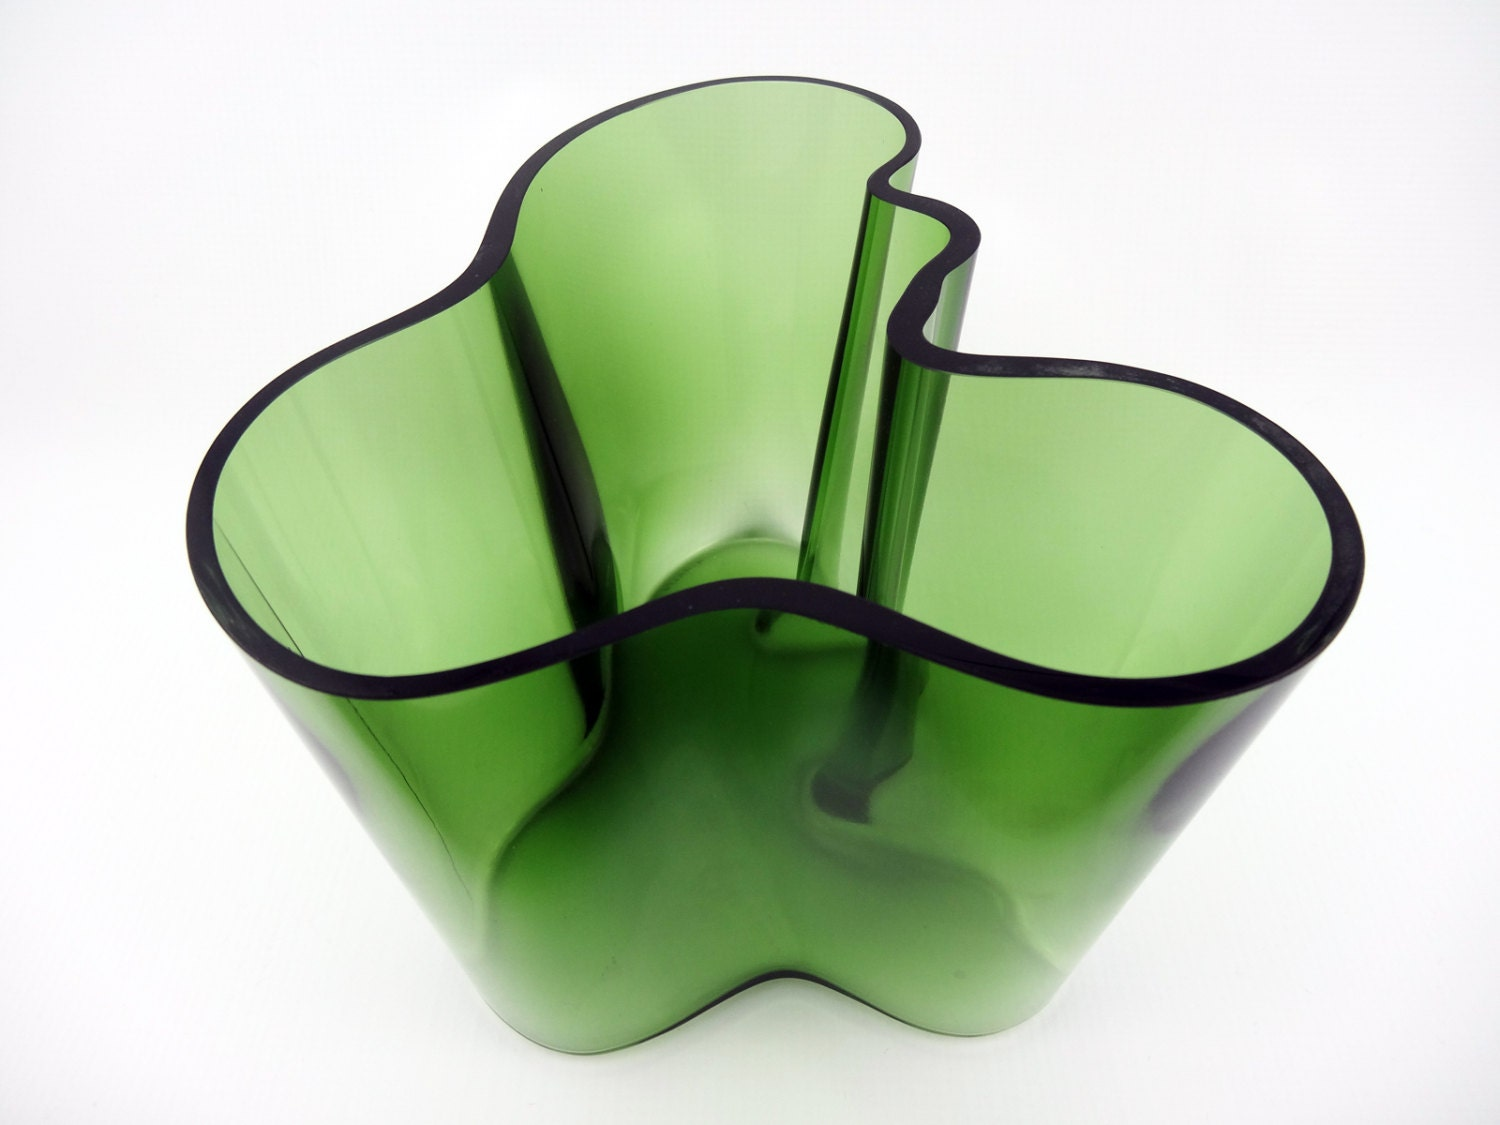 aalto vase iittala vase green alvar aalto vase finnish. Black Bedroom Furniture Sets. Home Design Ideas